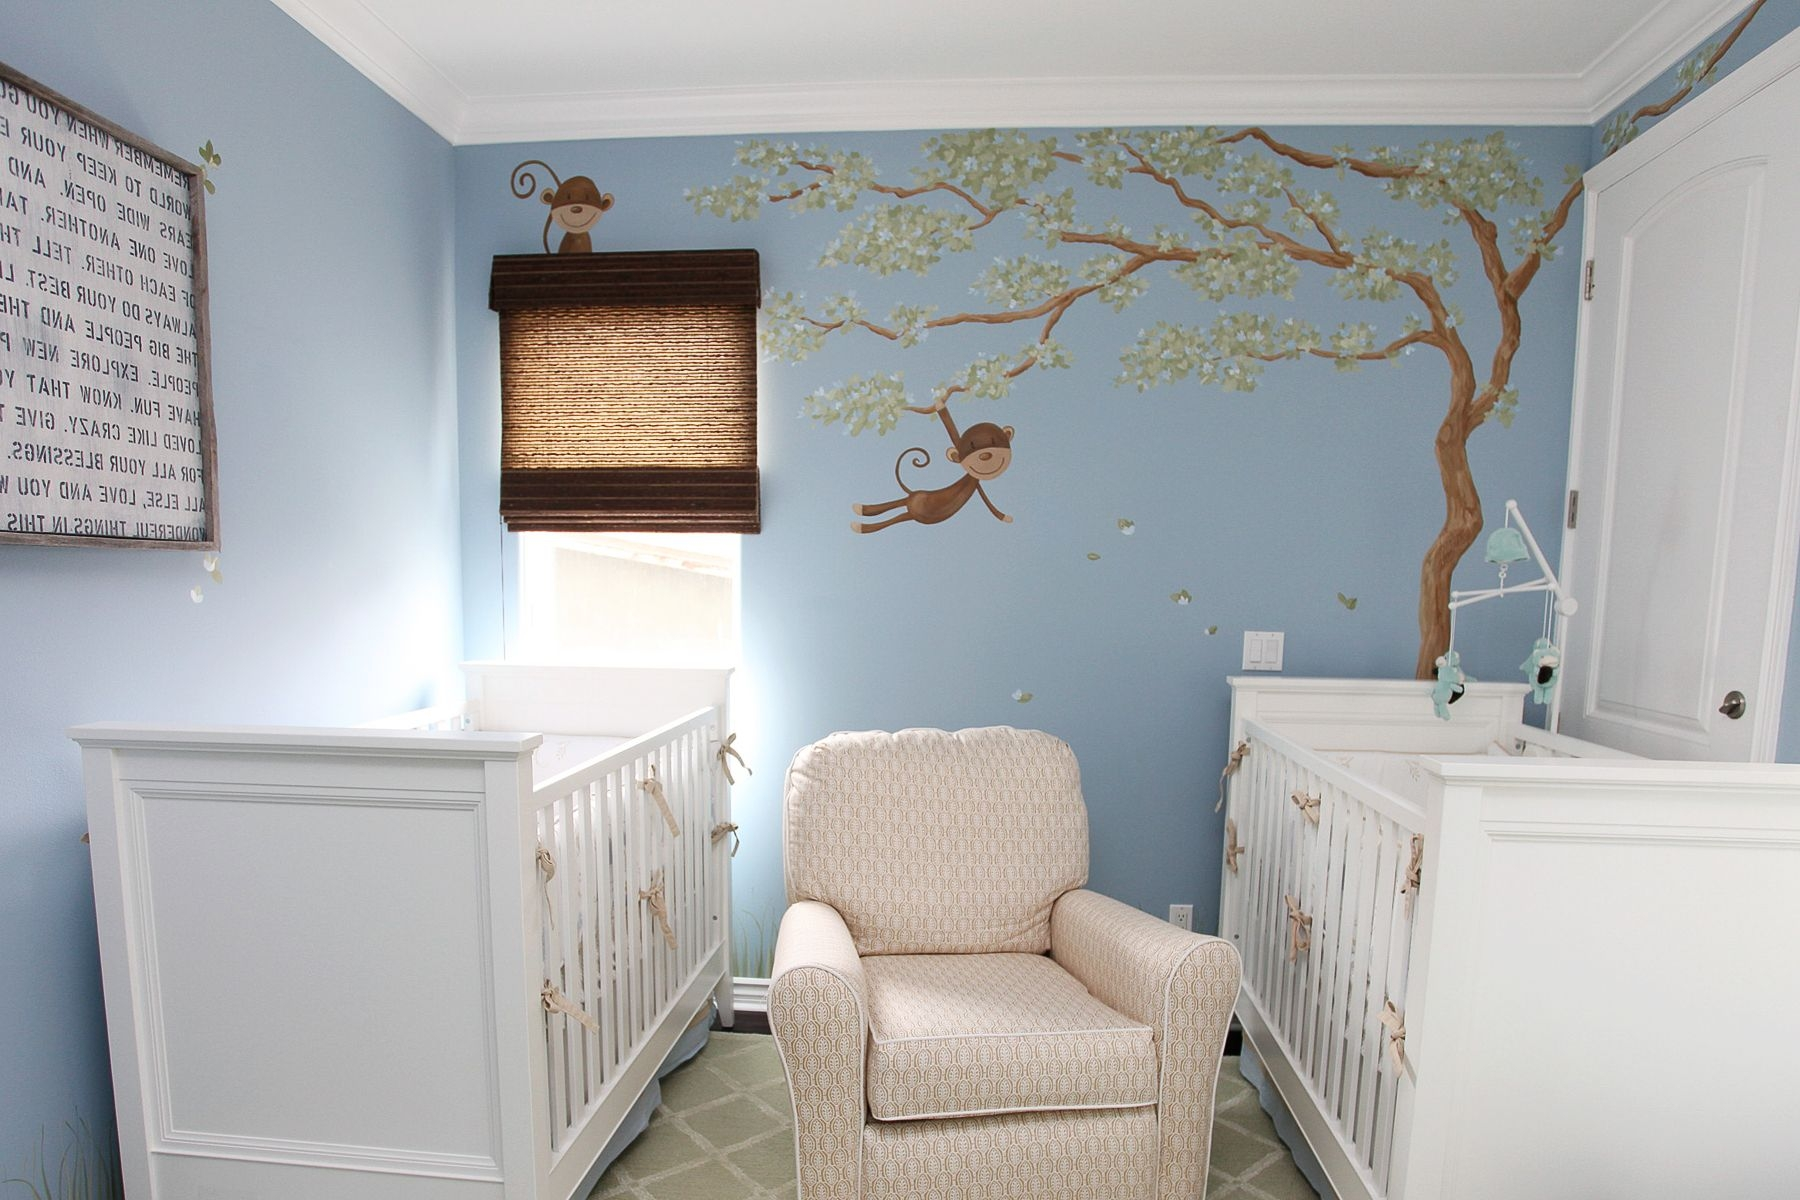 Bedroom mural design homesfeed for Baby room decor ideas neutral